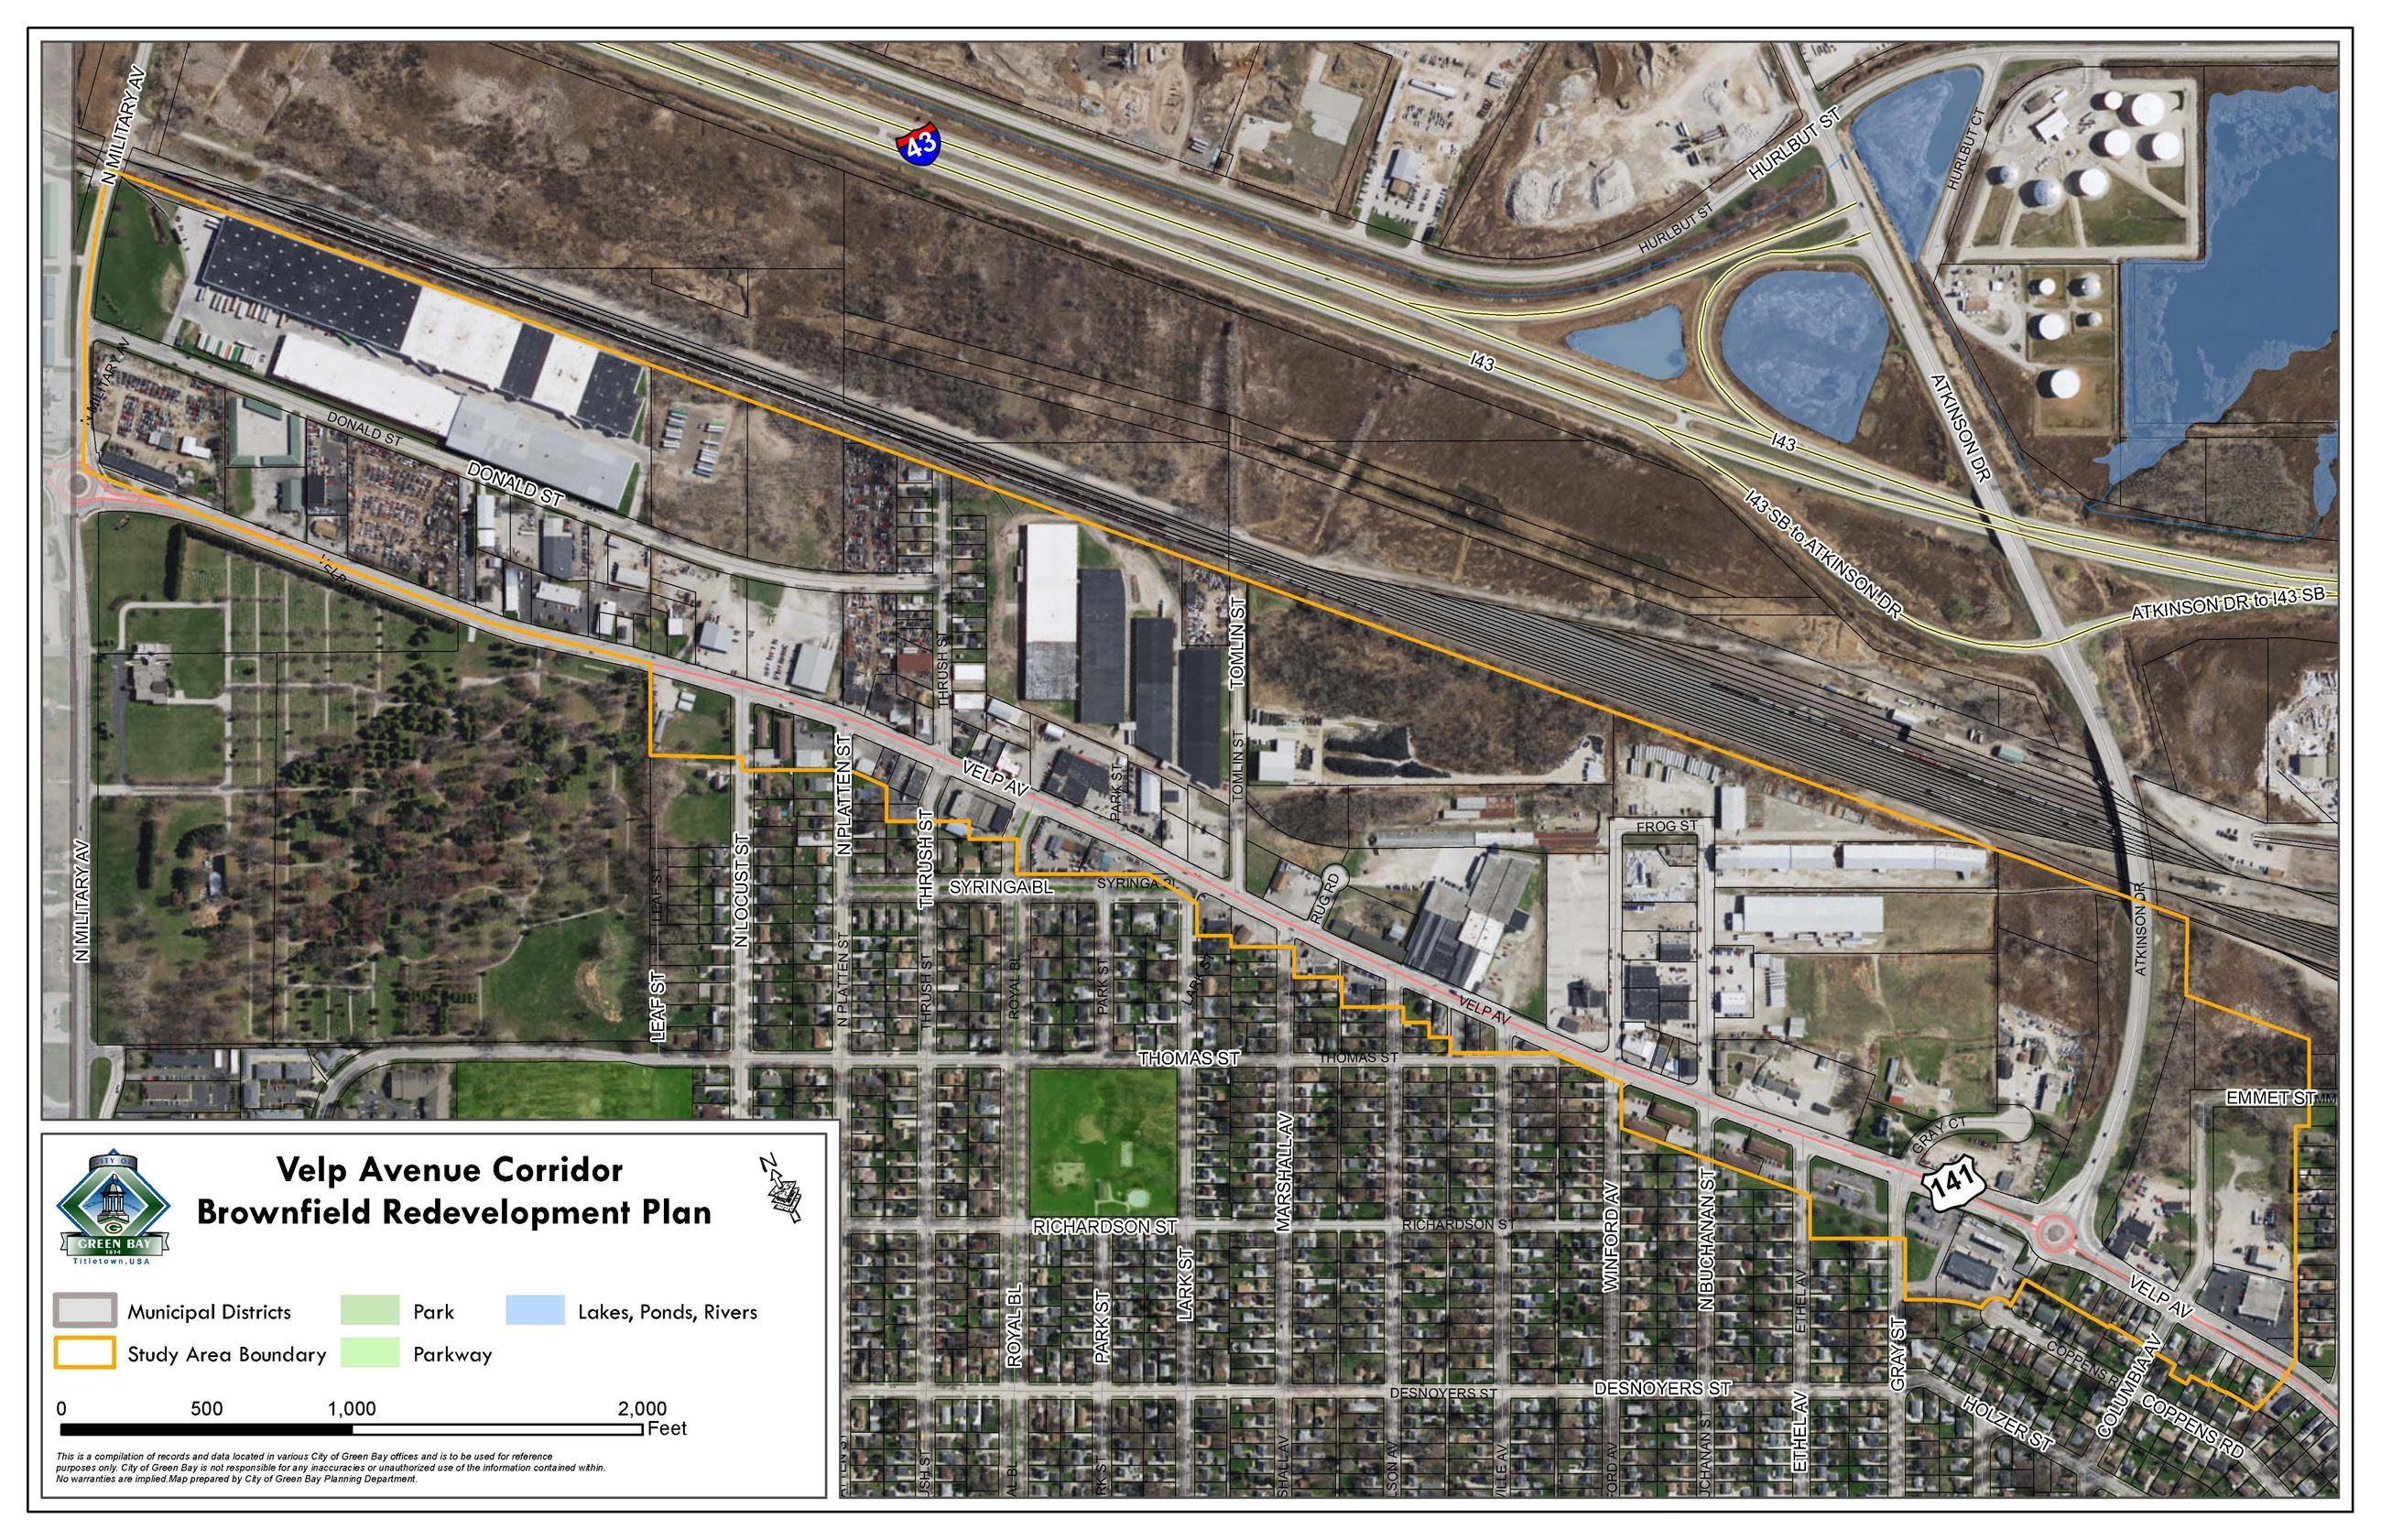 Velp Avenue Corridor Plan Map